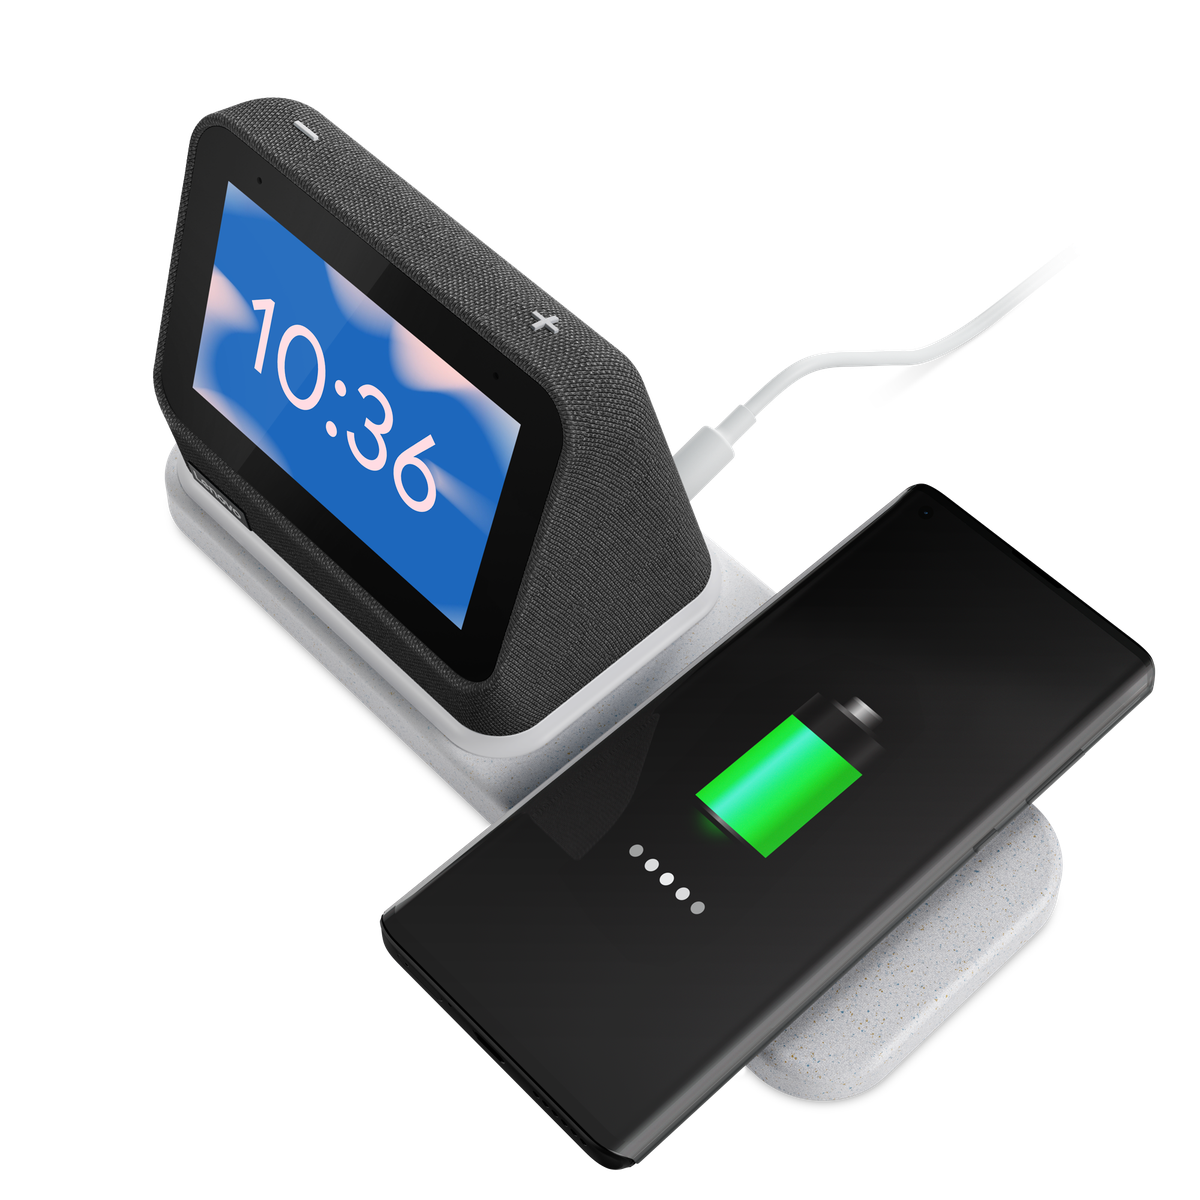 The Lenovo Smart Clock on top of a wireless charger that charges a smart phone. The screen displays the time 10:36 on a blue background with clouds.